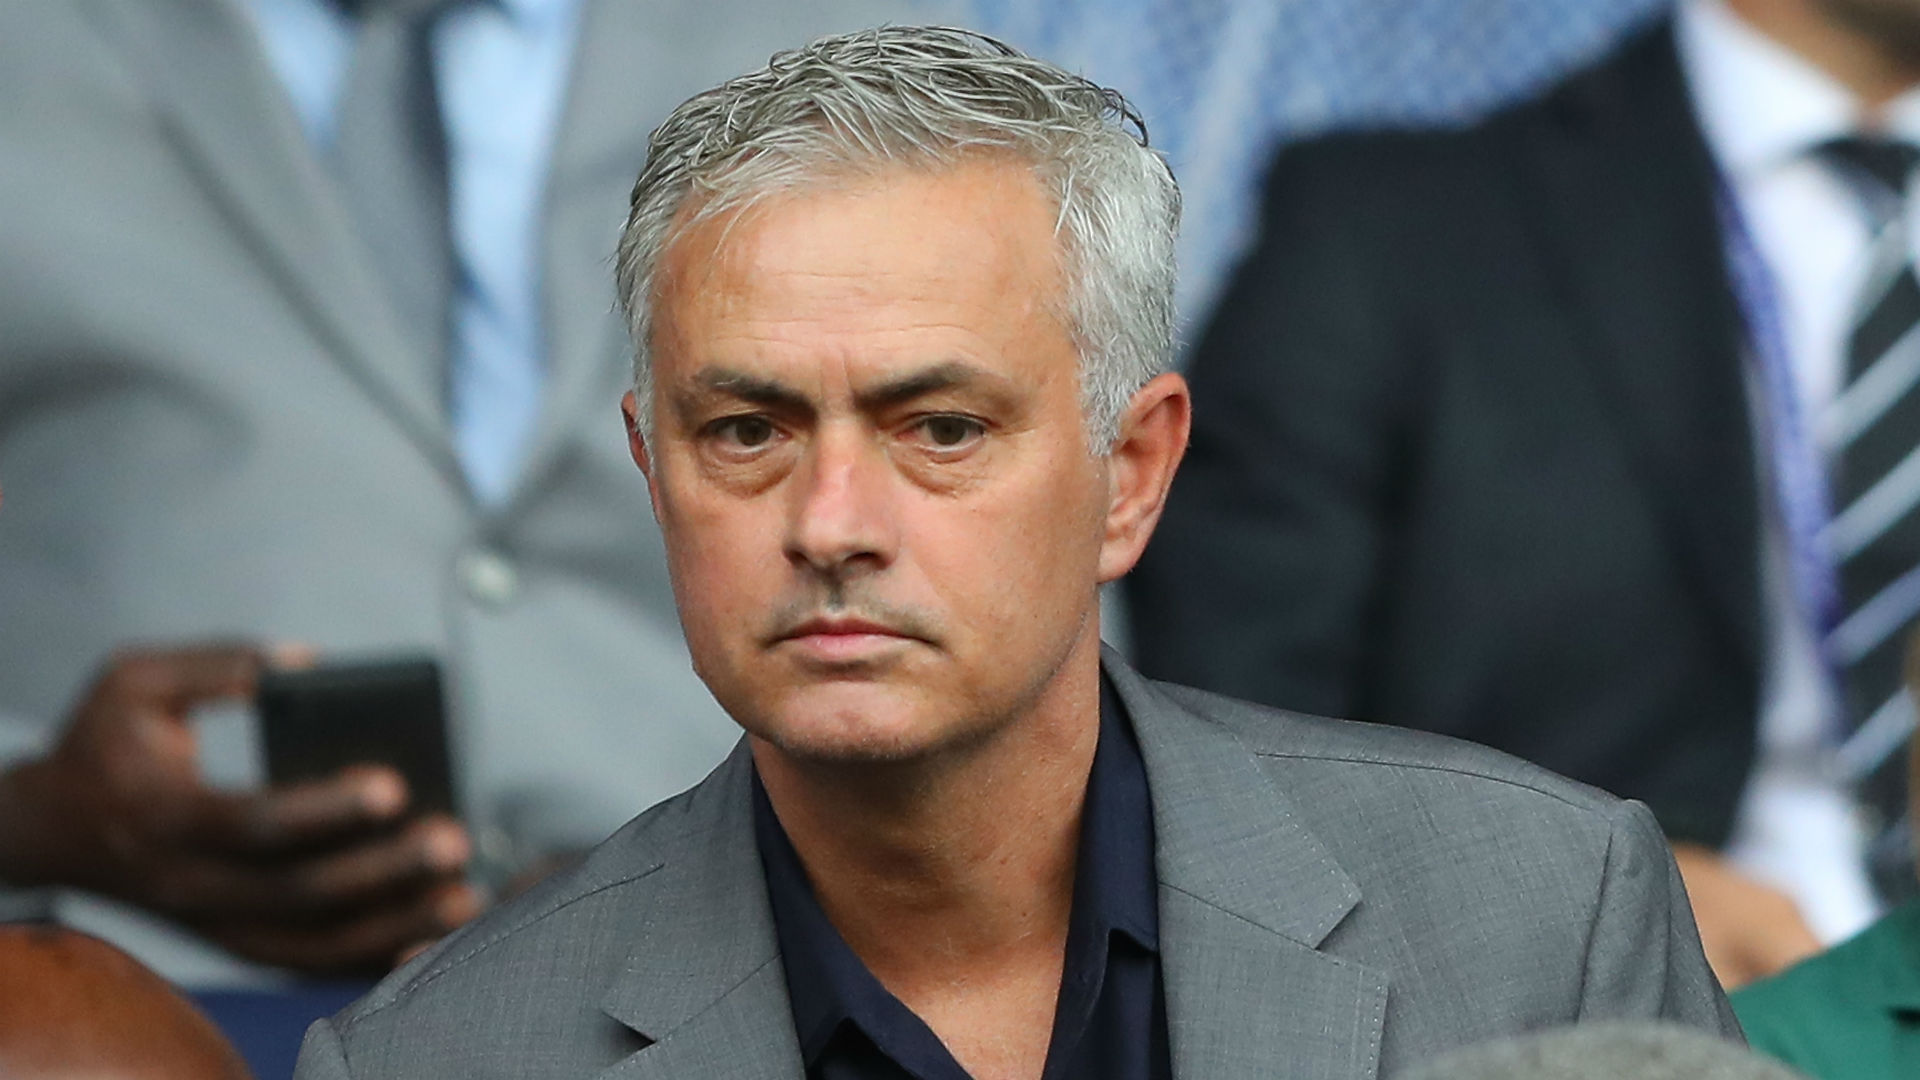 Jose Mourinho eager for return to football but only for 'right project'